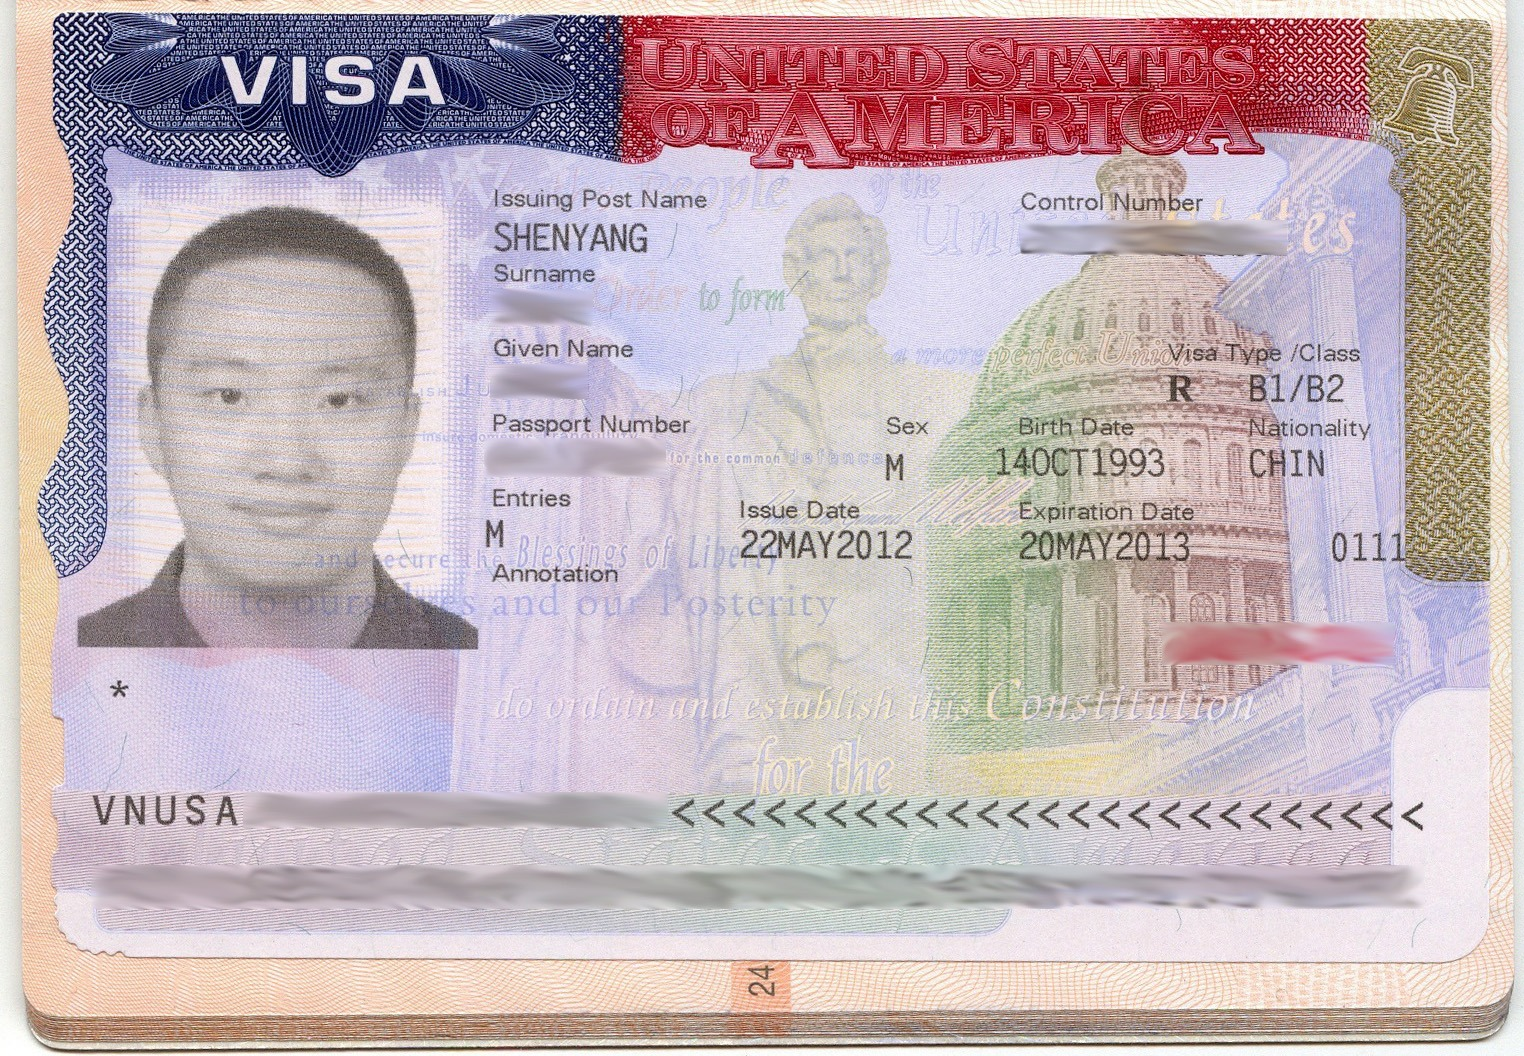 USA visa issued by Shenyang 2012 - How Many Days To Get Us Visa After Interview